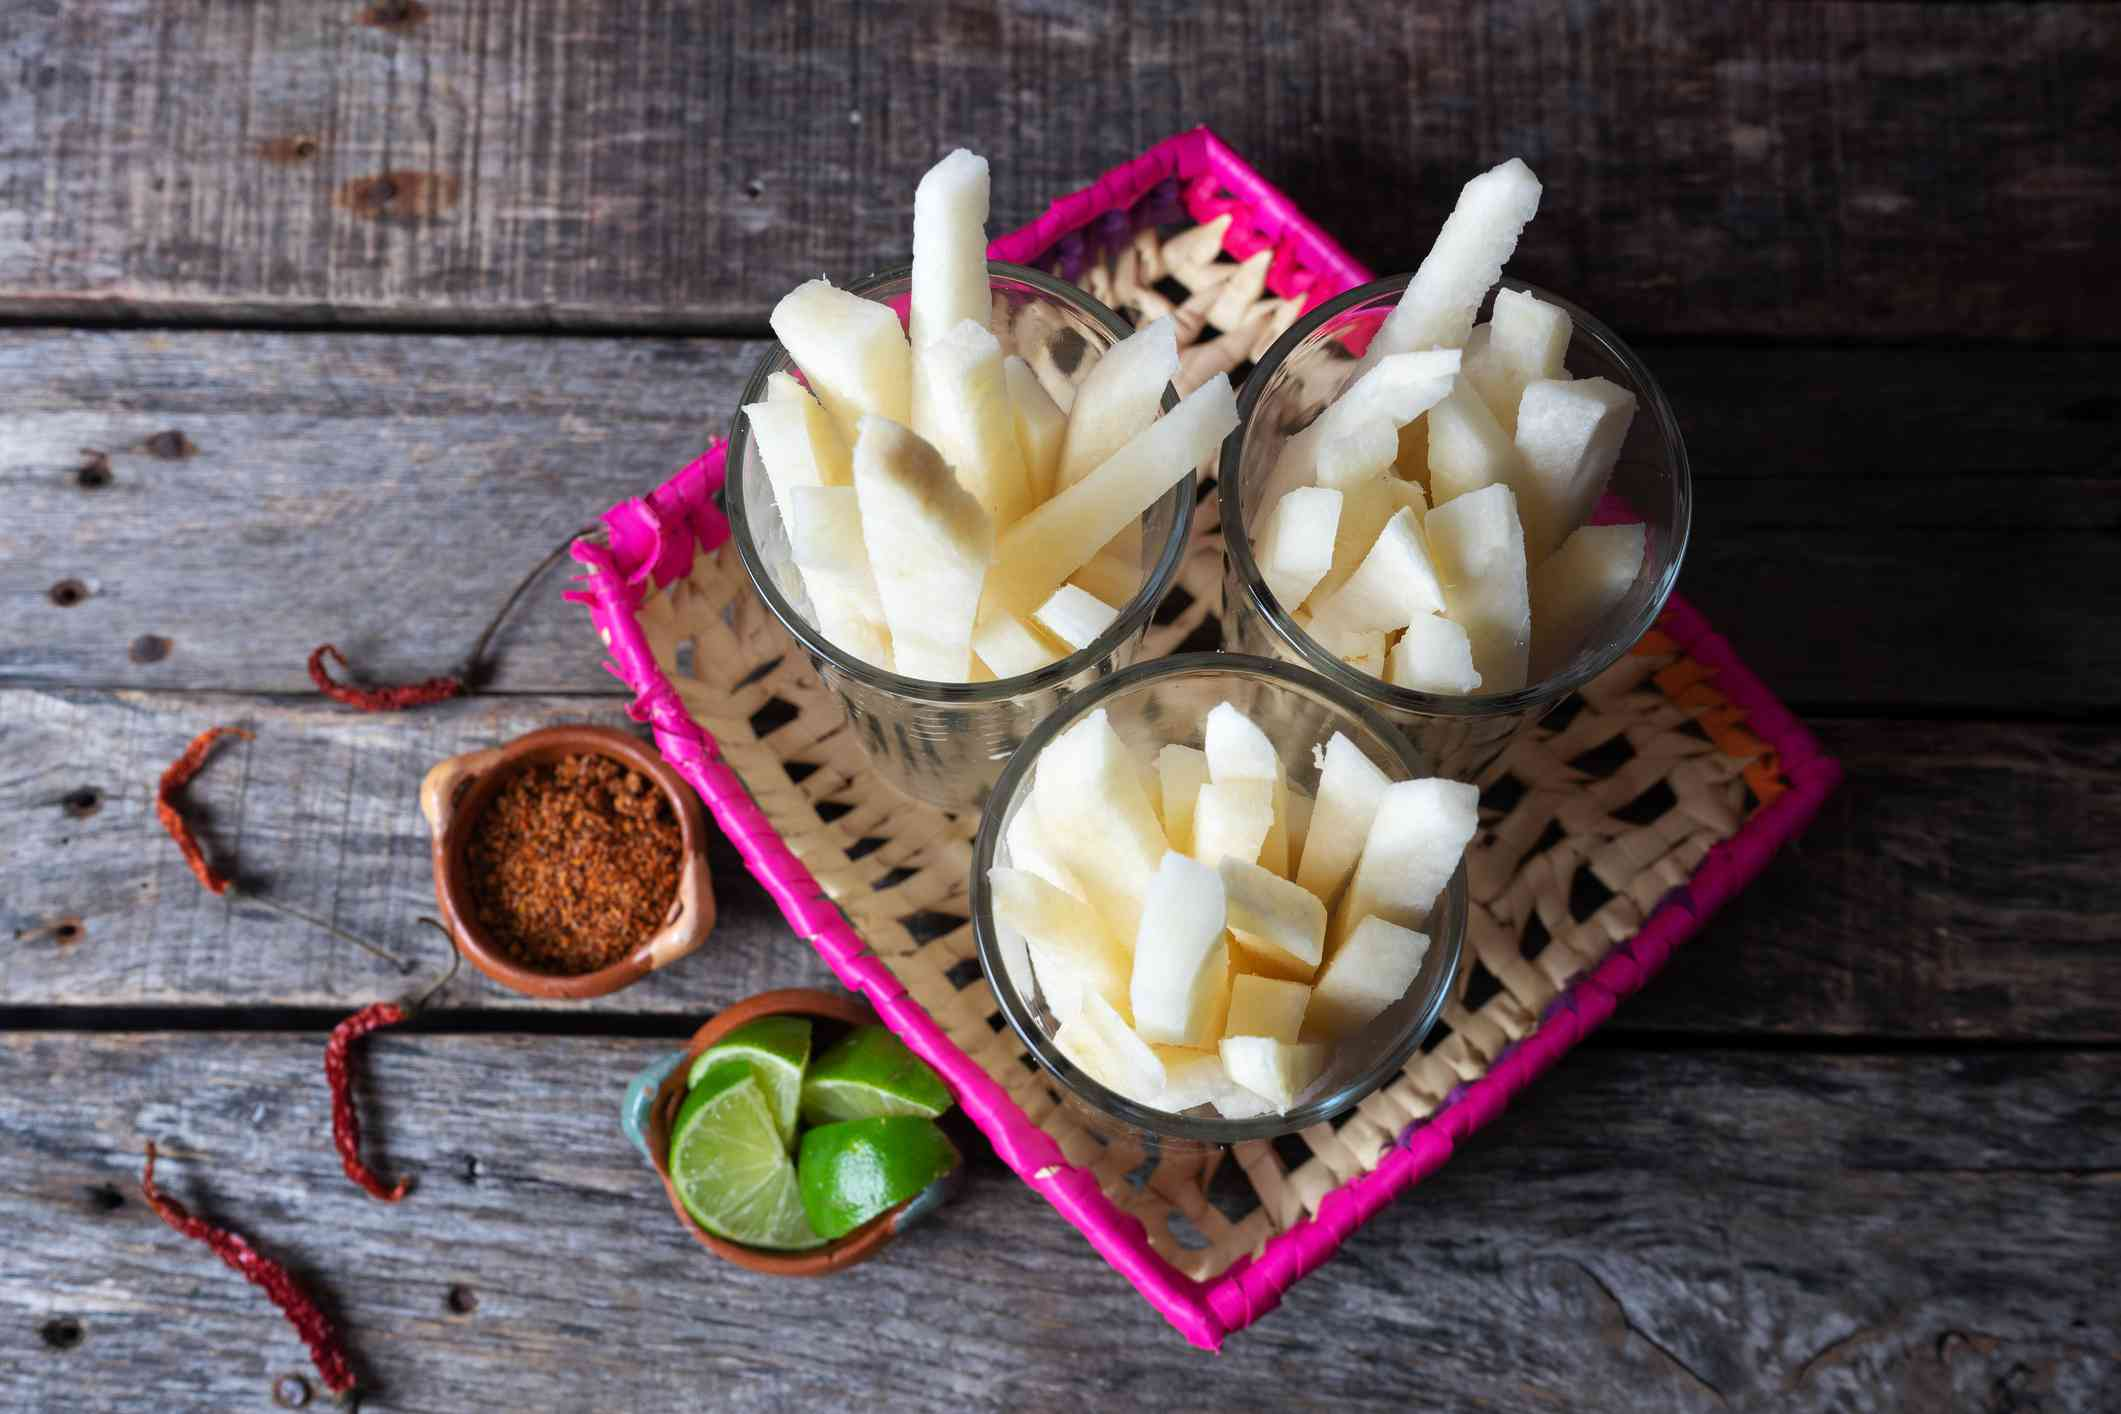 Jicama sliced in small bowls on a colorful basket